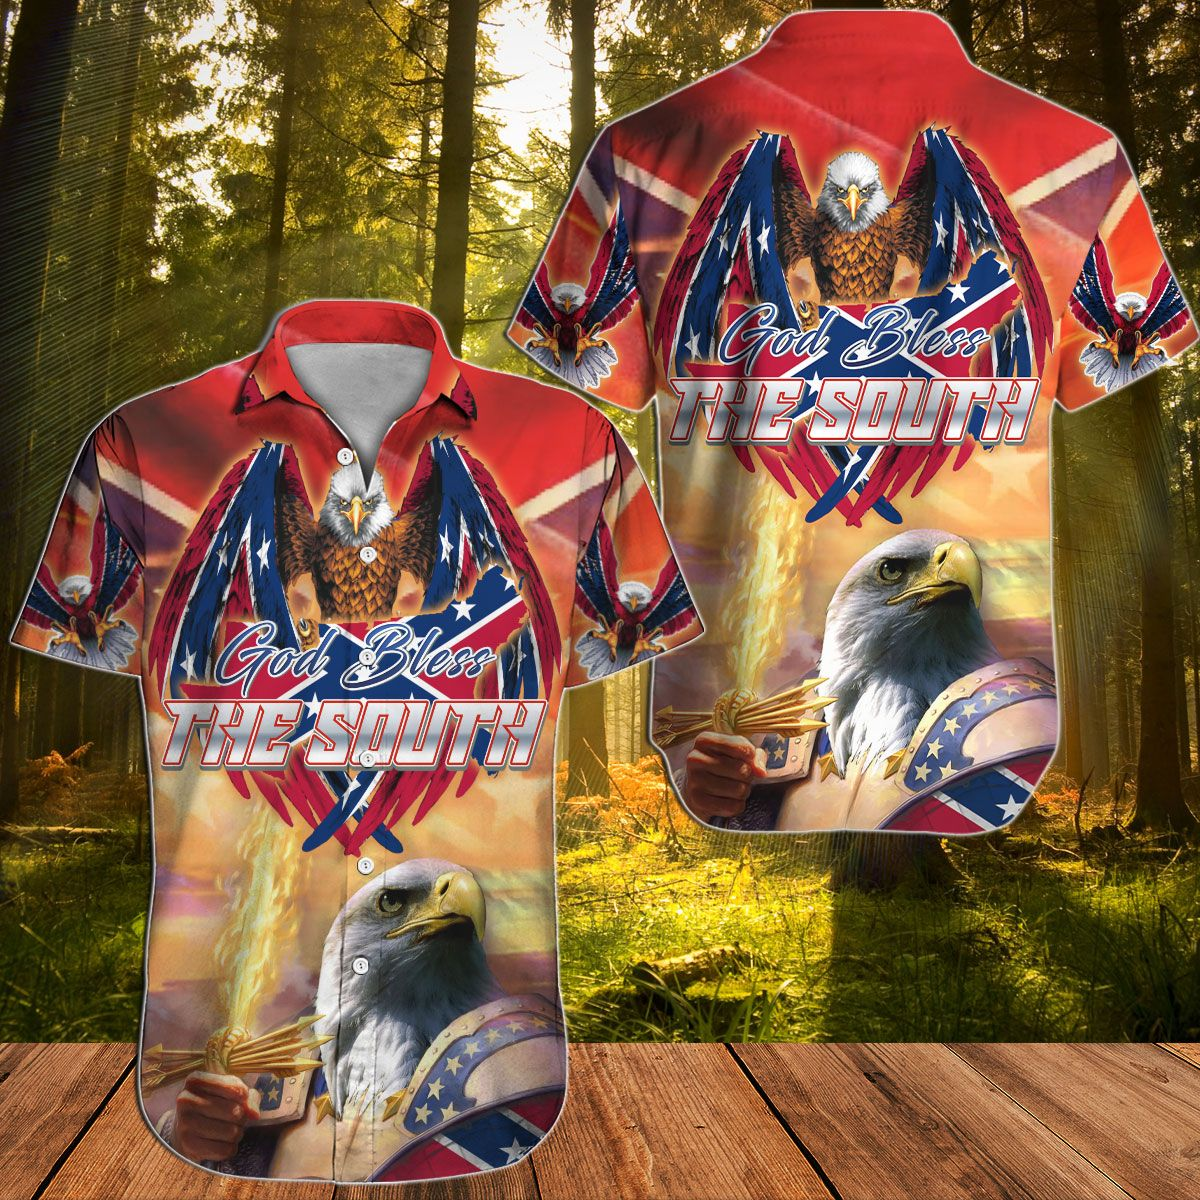 God bless the South Eagle Soldiers Hawaiian shirt